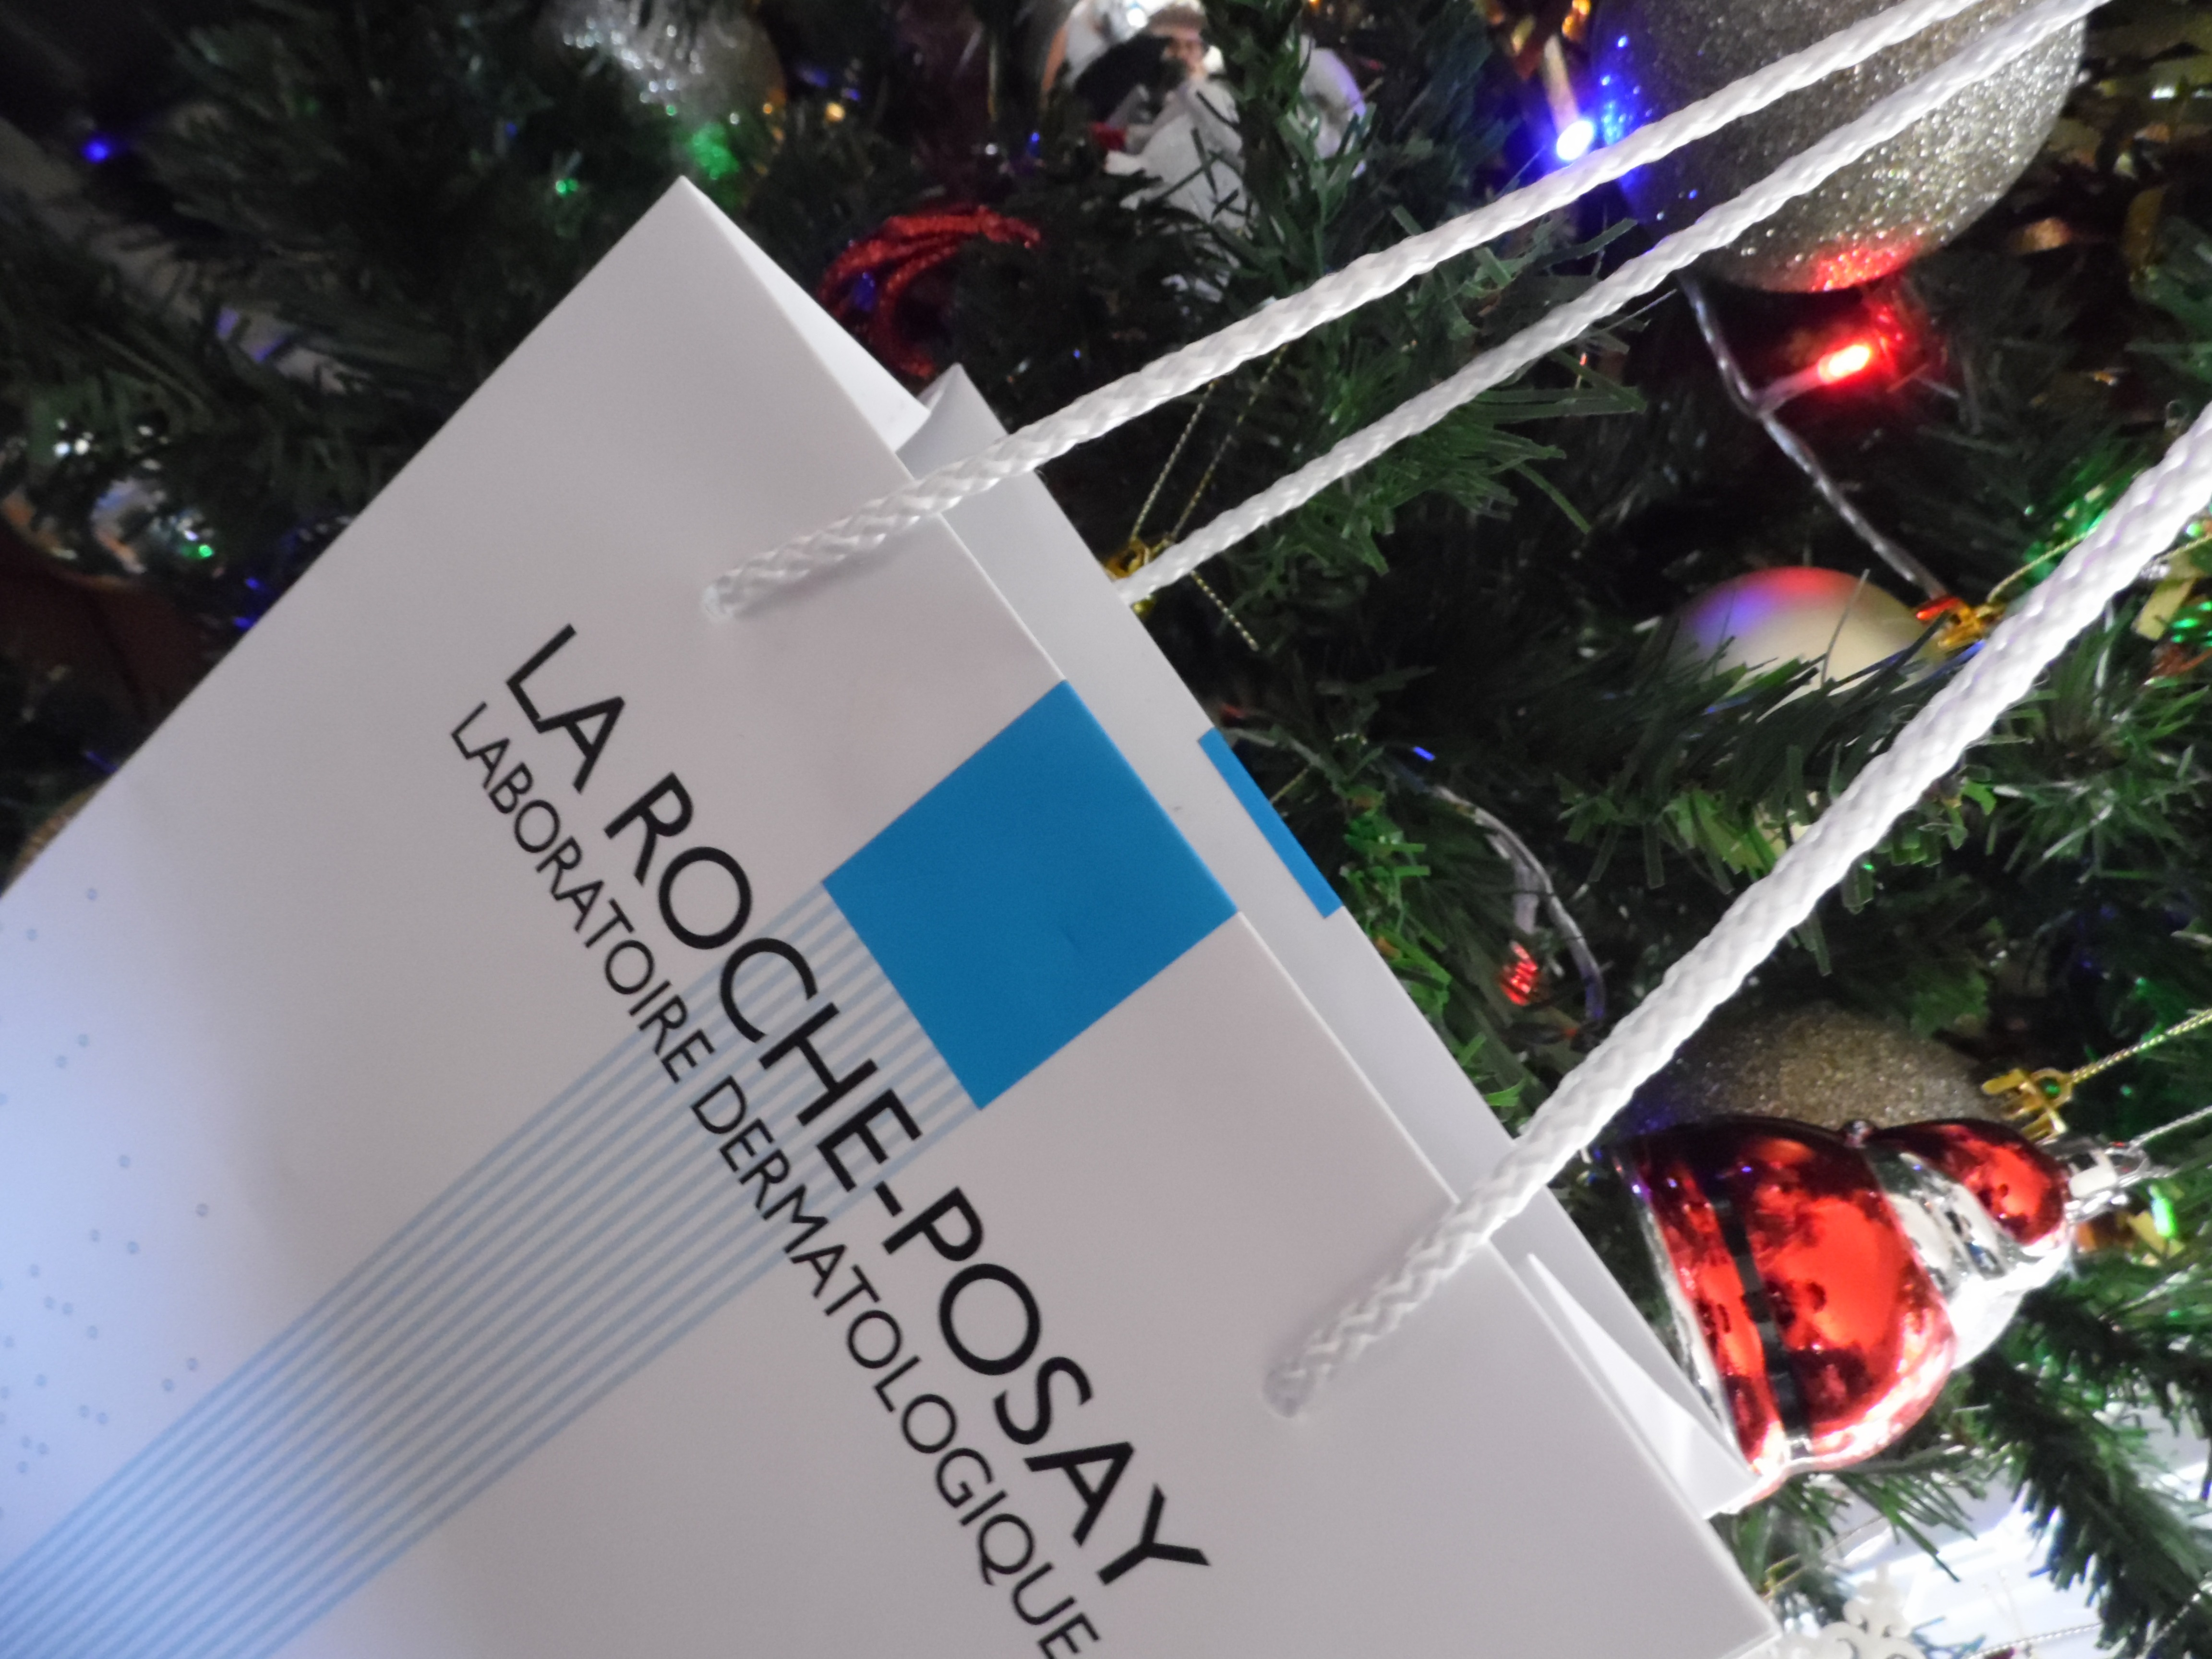 La Roche Posay Beauty Resolutions - By Megan Kelly